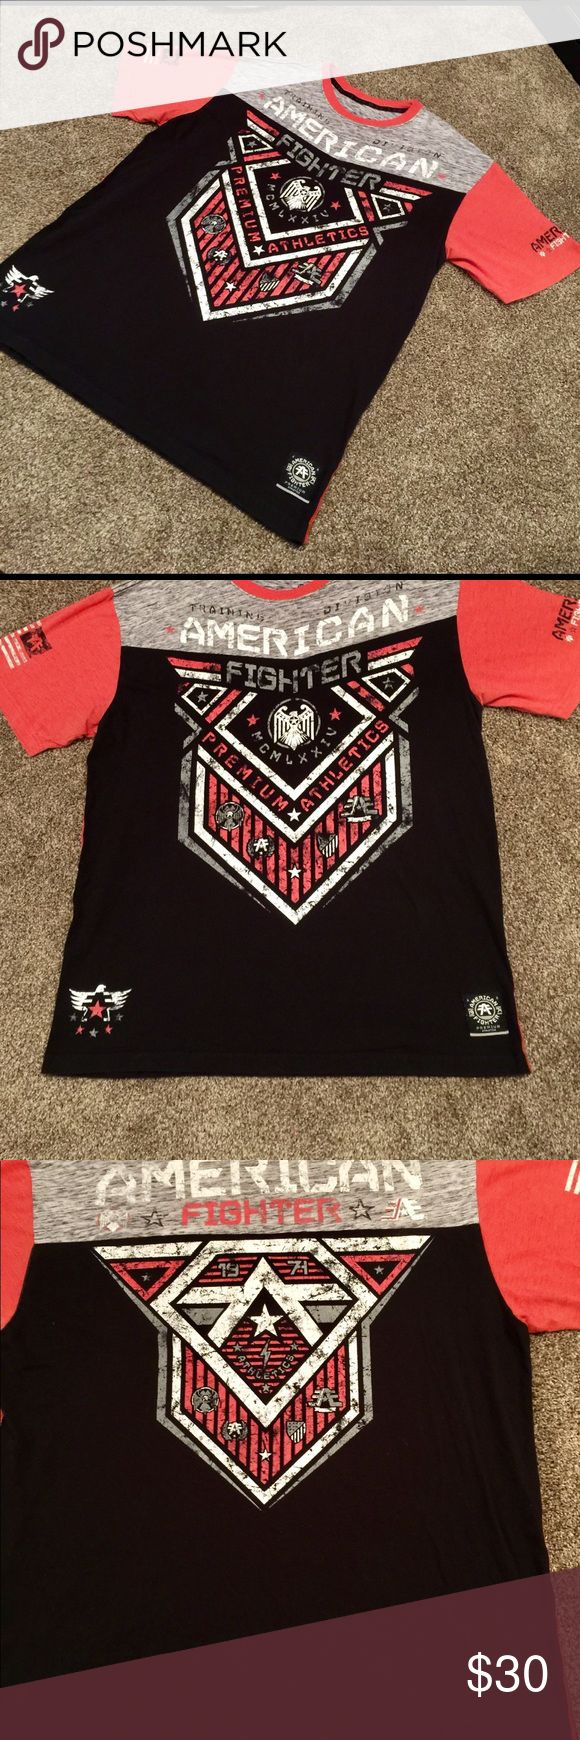 American Fighter T-shirt for men 2xlarge XXL American Fighter T-shirt Red gray white and black American Fighter Shirts Tees - Short Sleeve